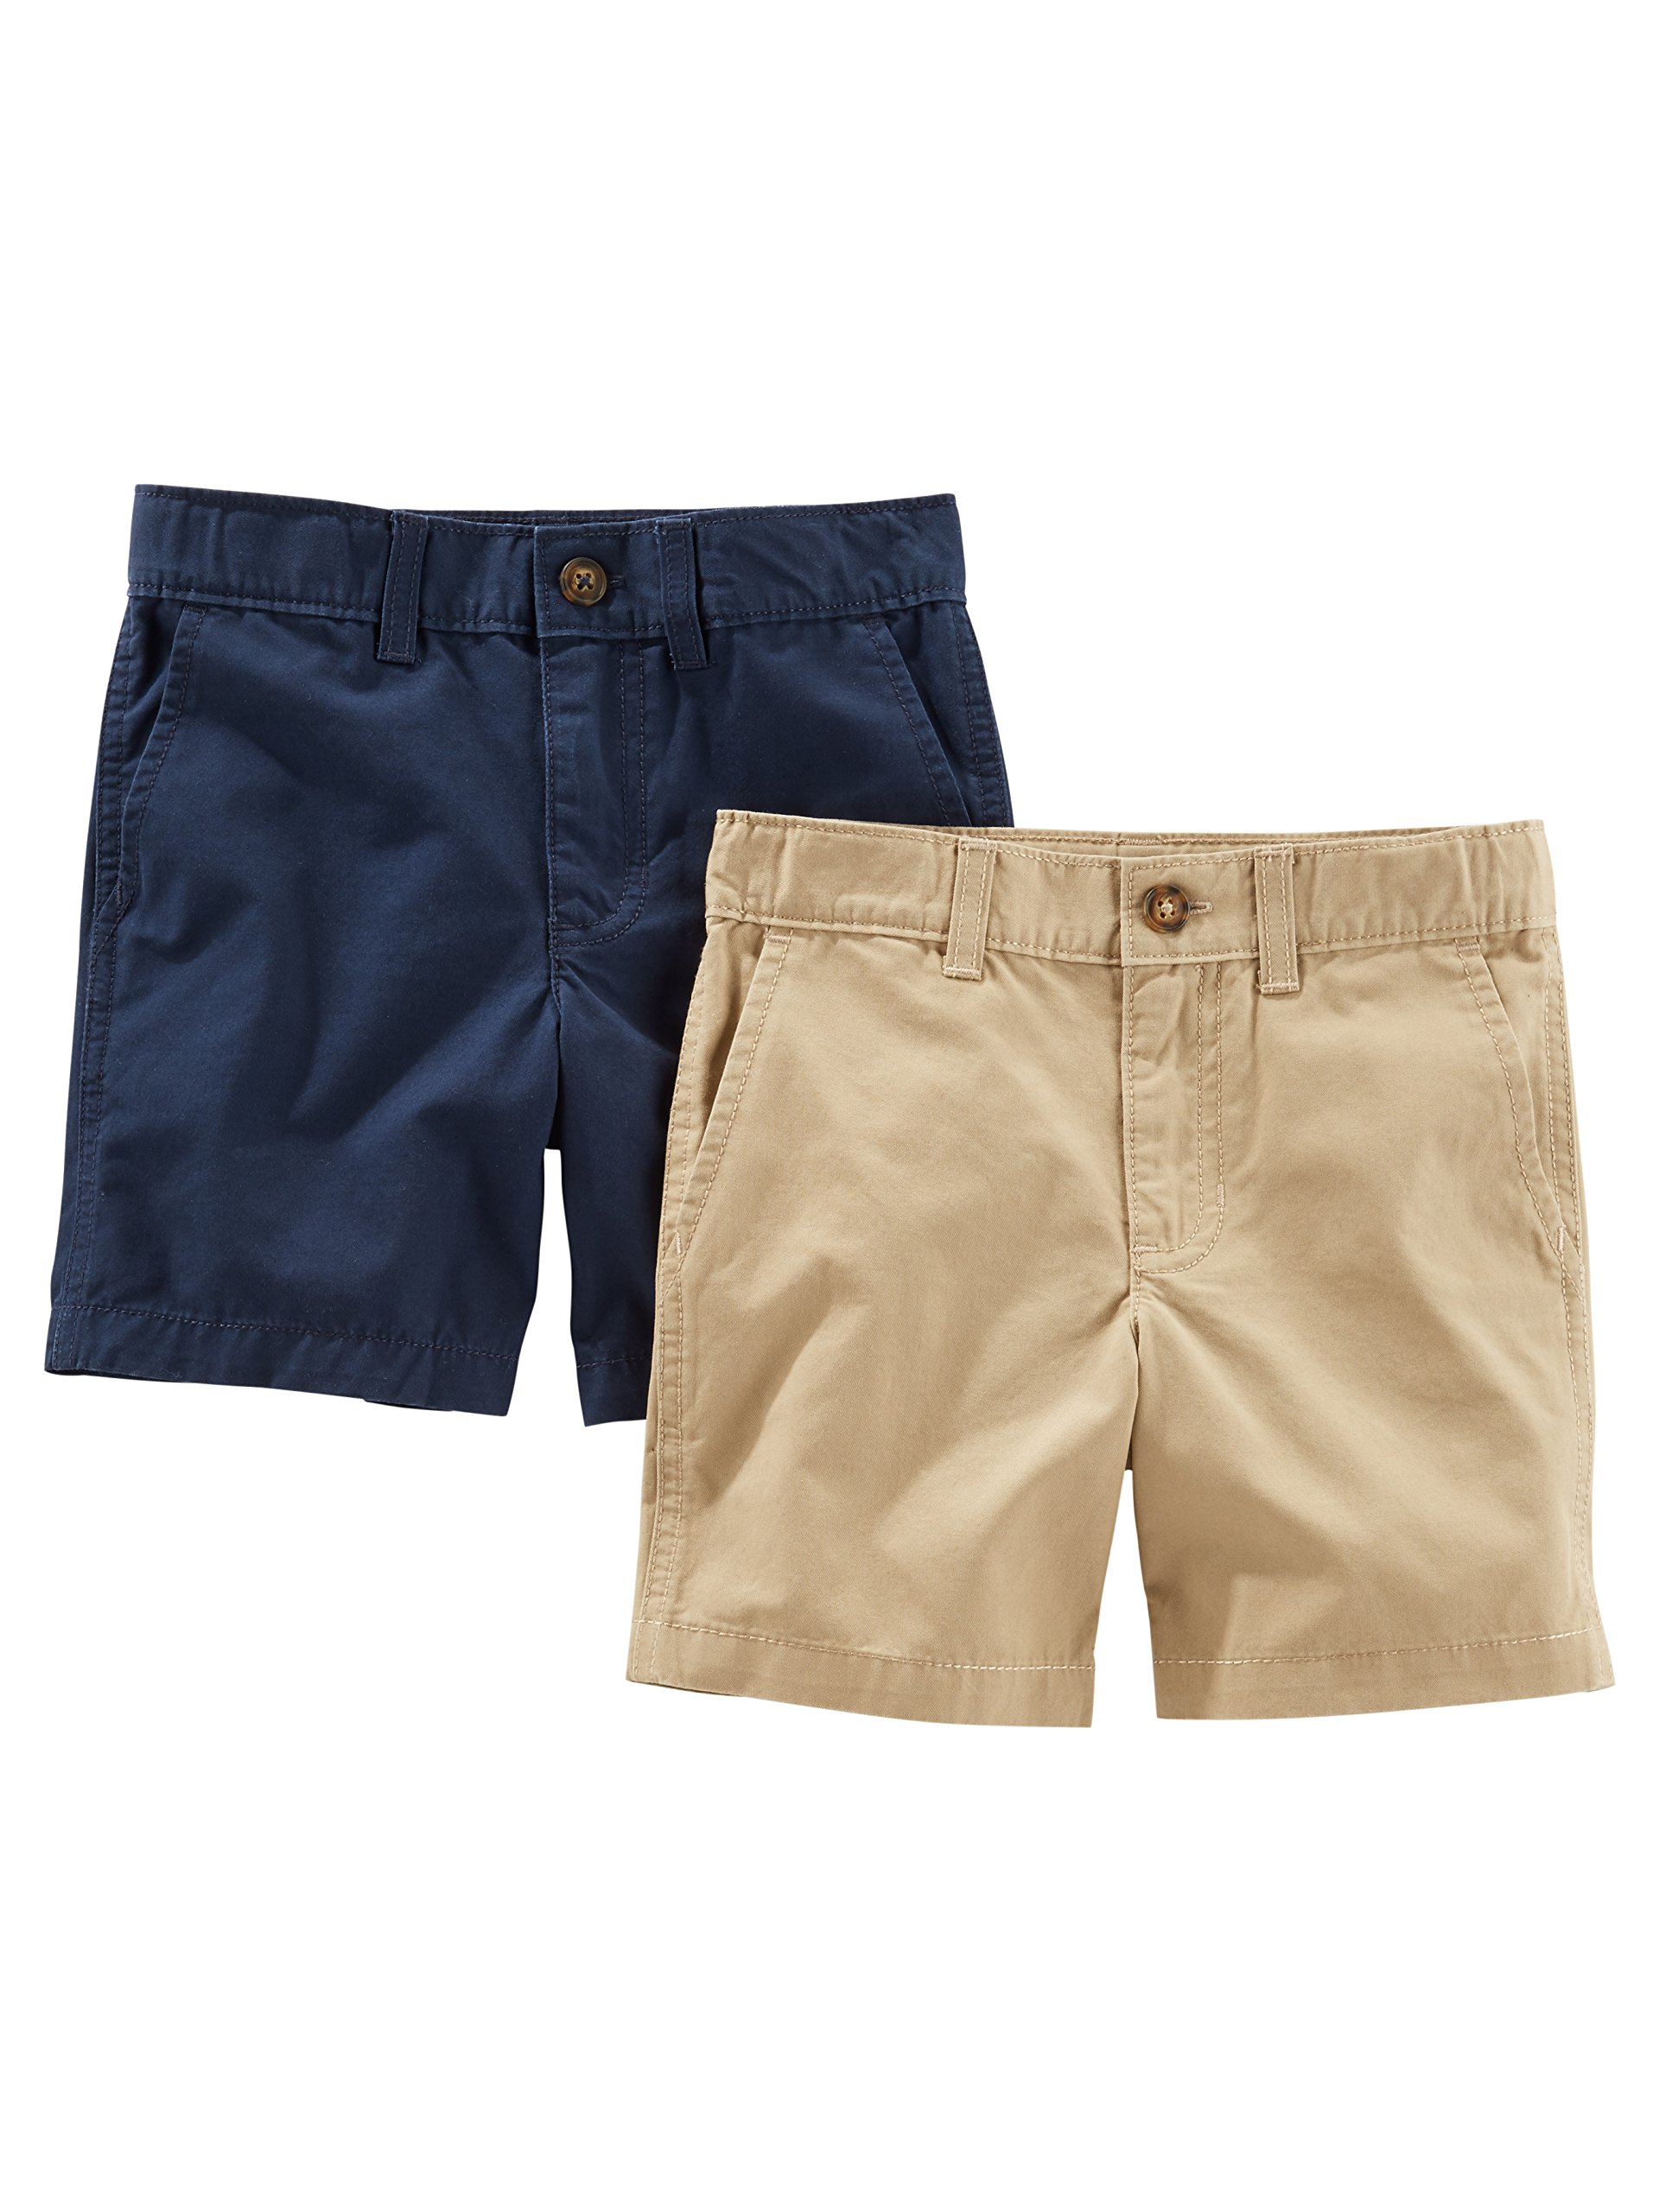 Simple Joys by Carter's Baby Boys' Toddler 2-Pack Flat Front Shorts, Khaki, Navy, 3T